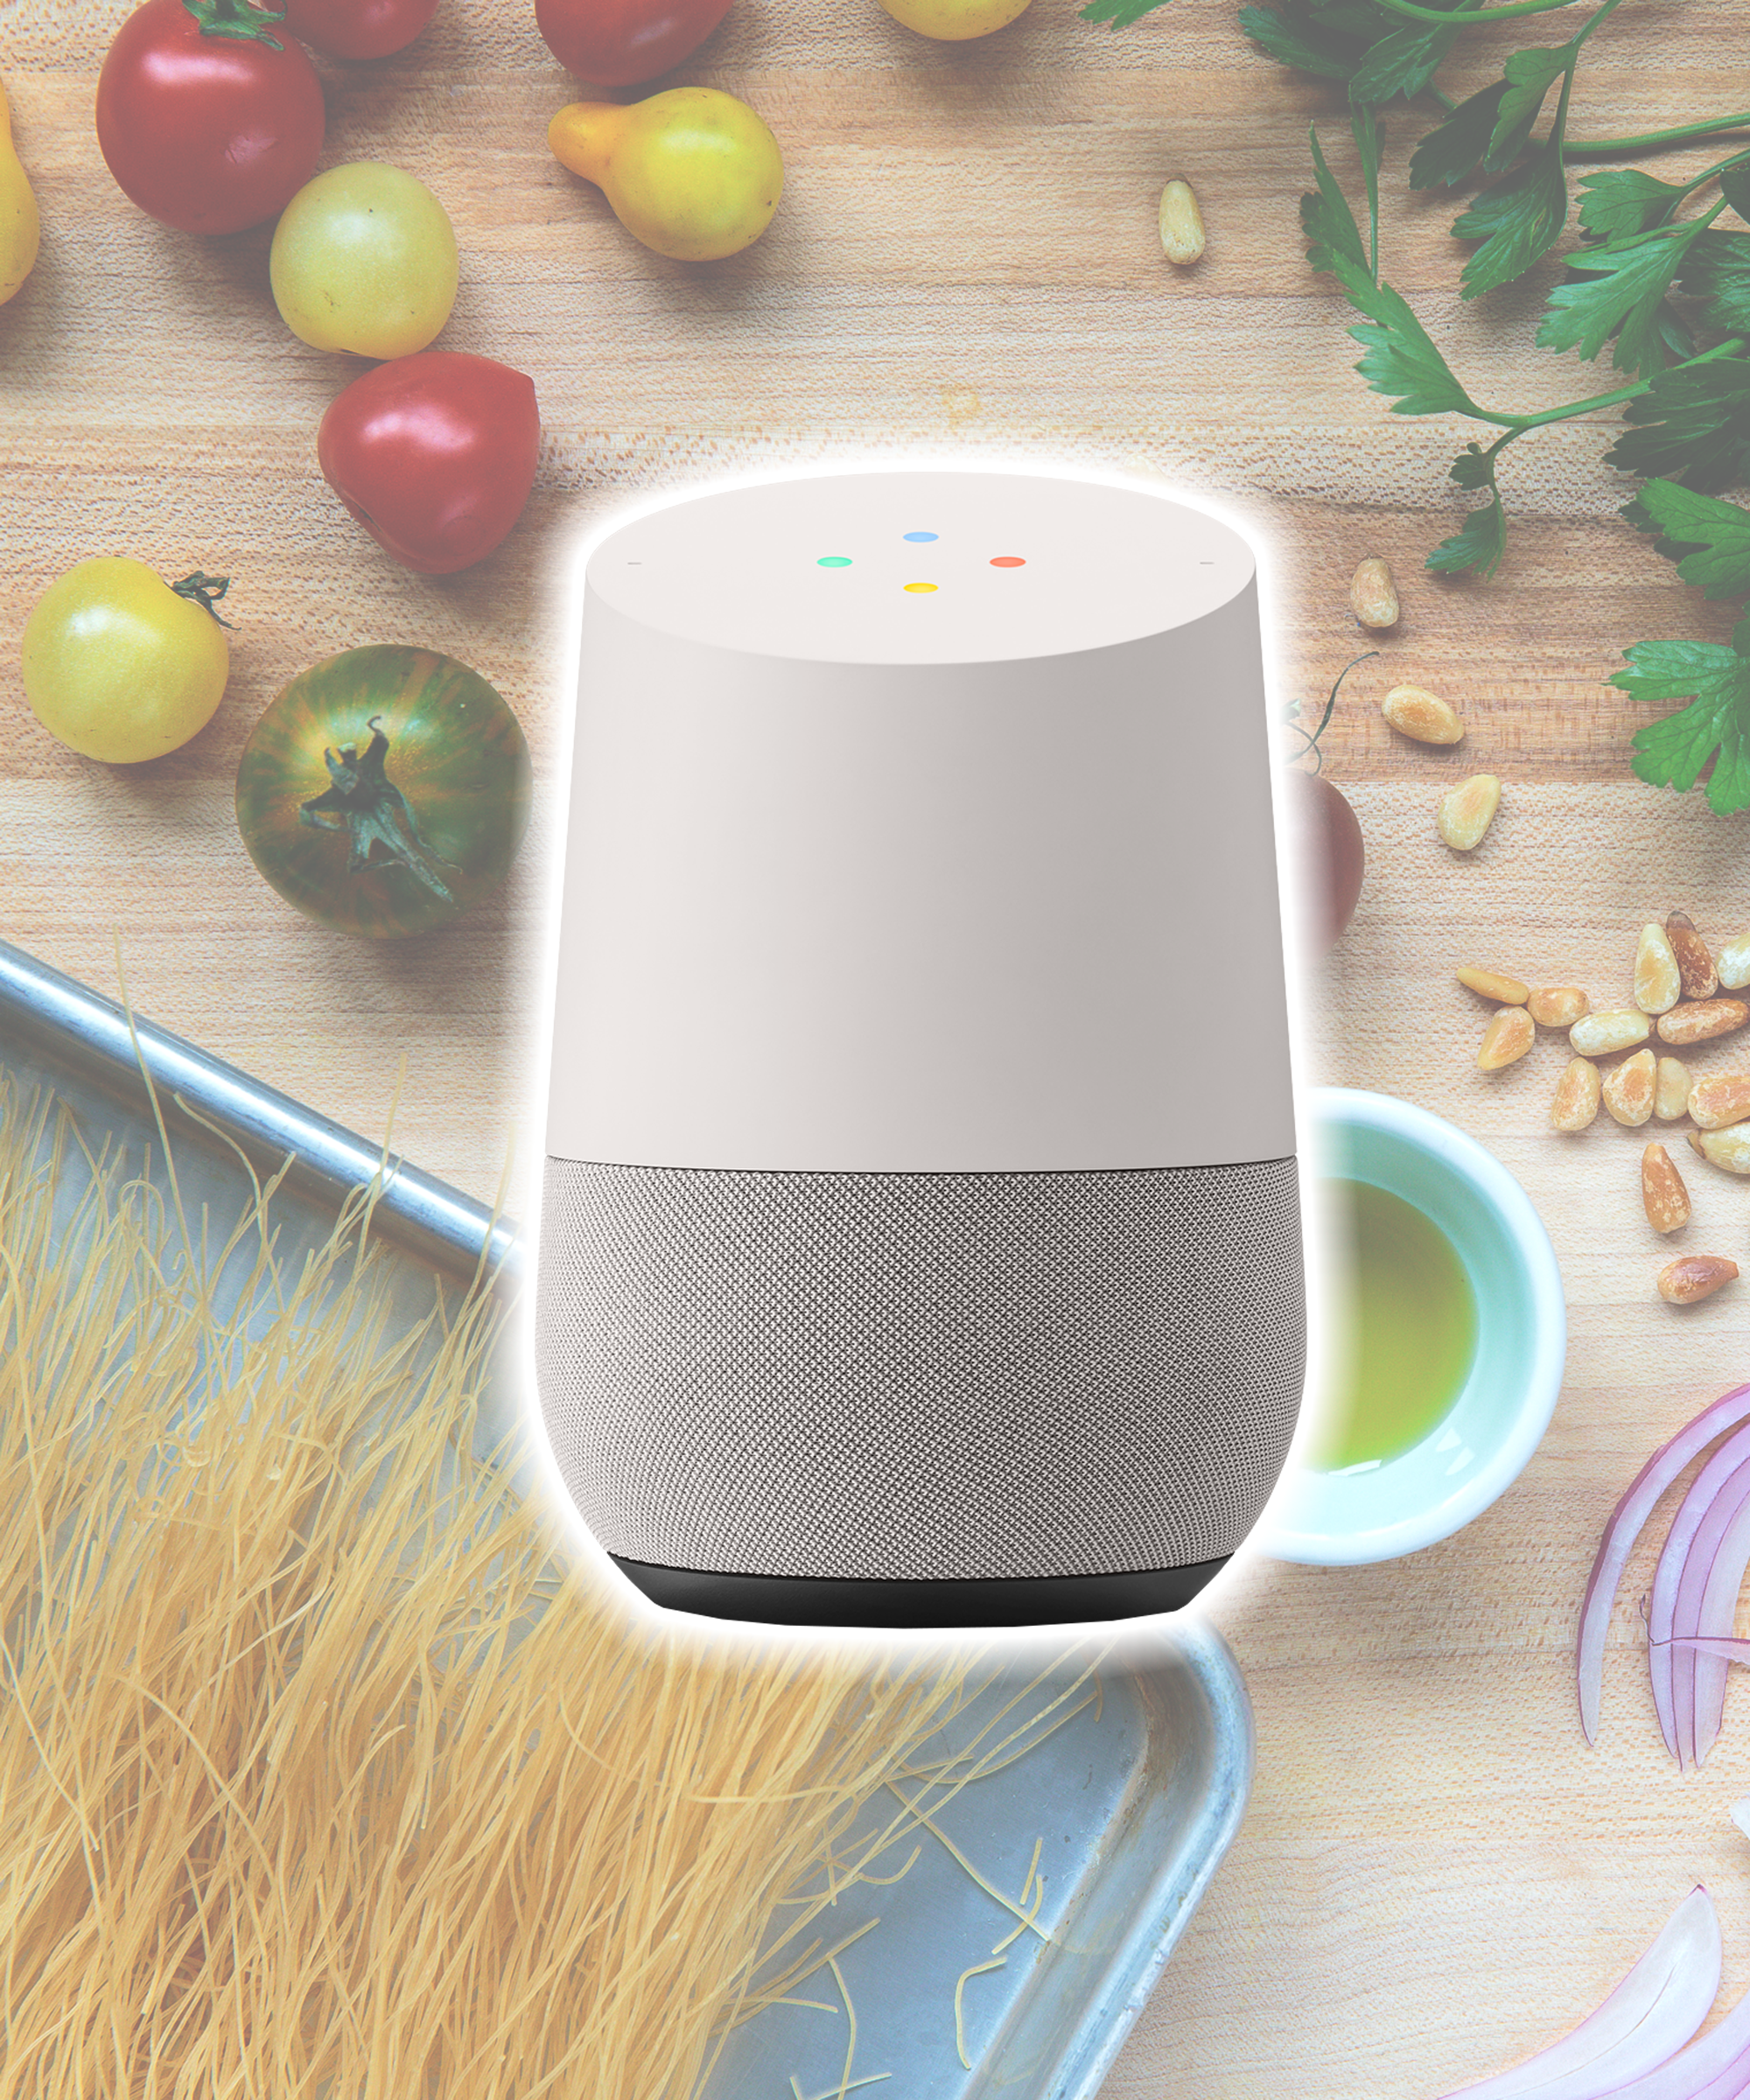 Now we're cooking-the Assistant on Google Home is your secret ingredient